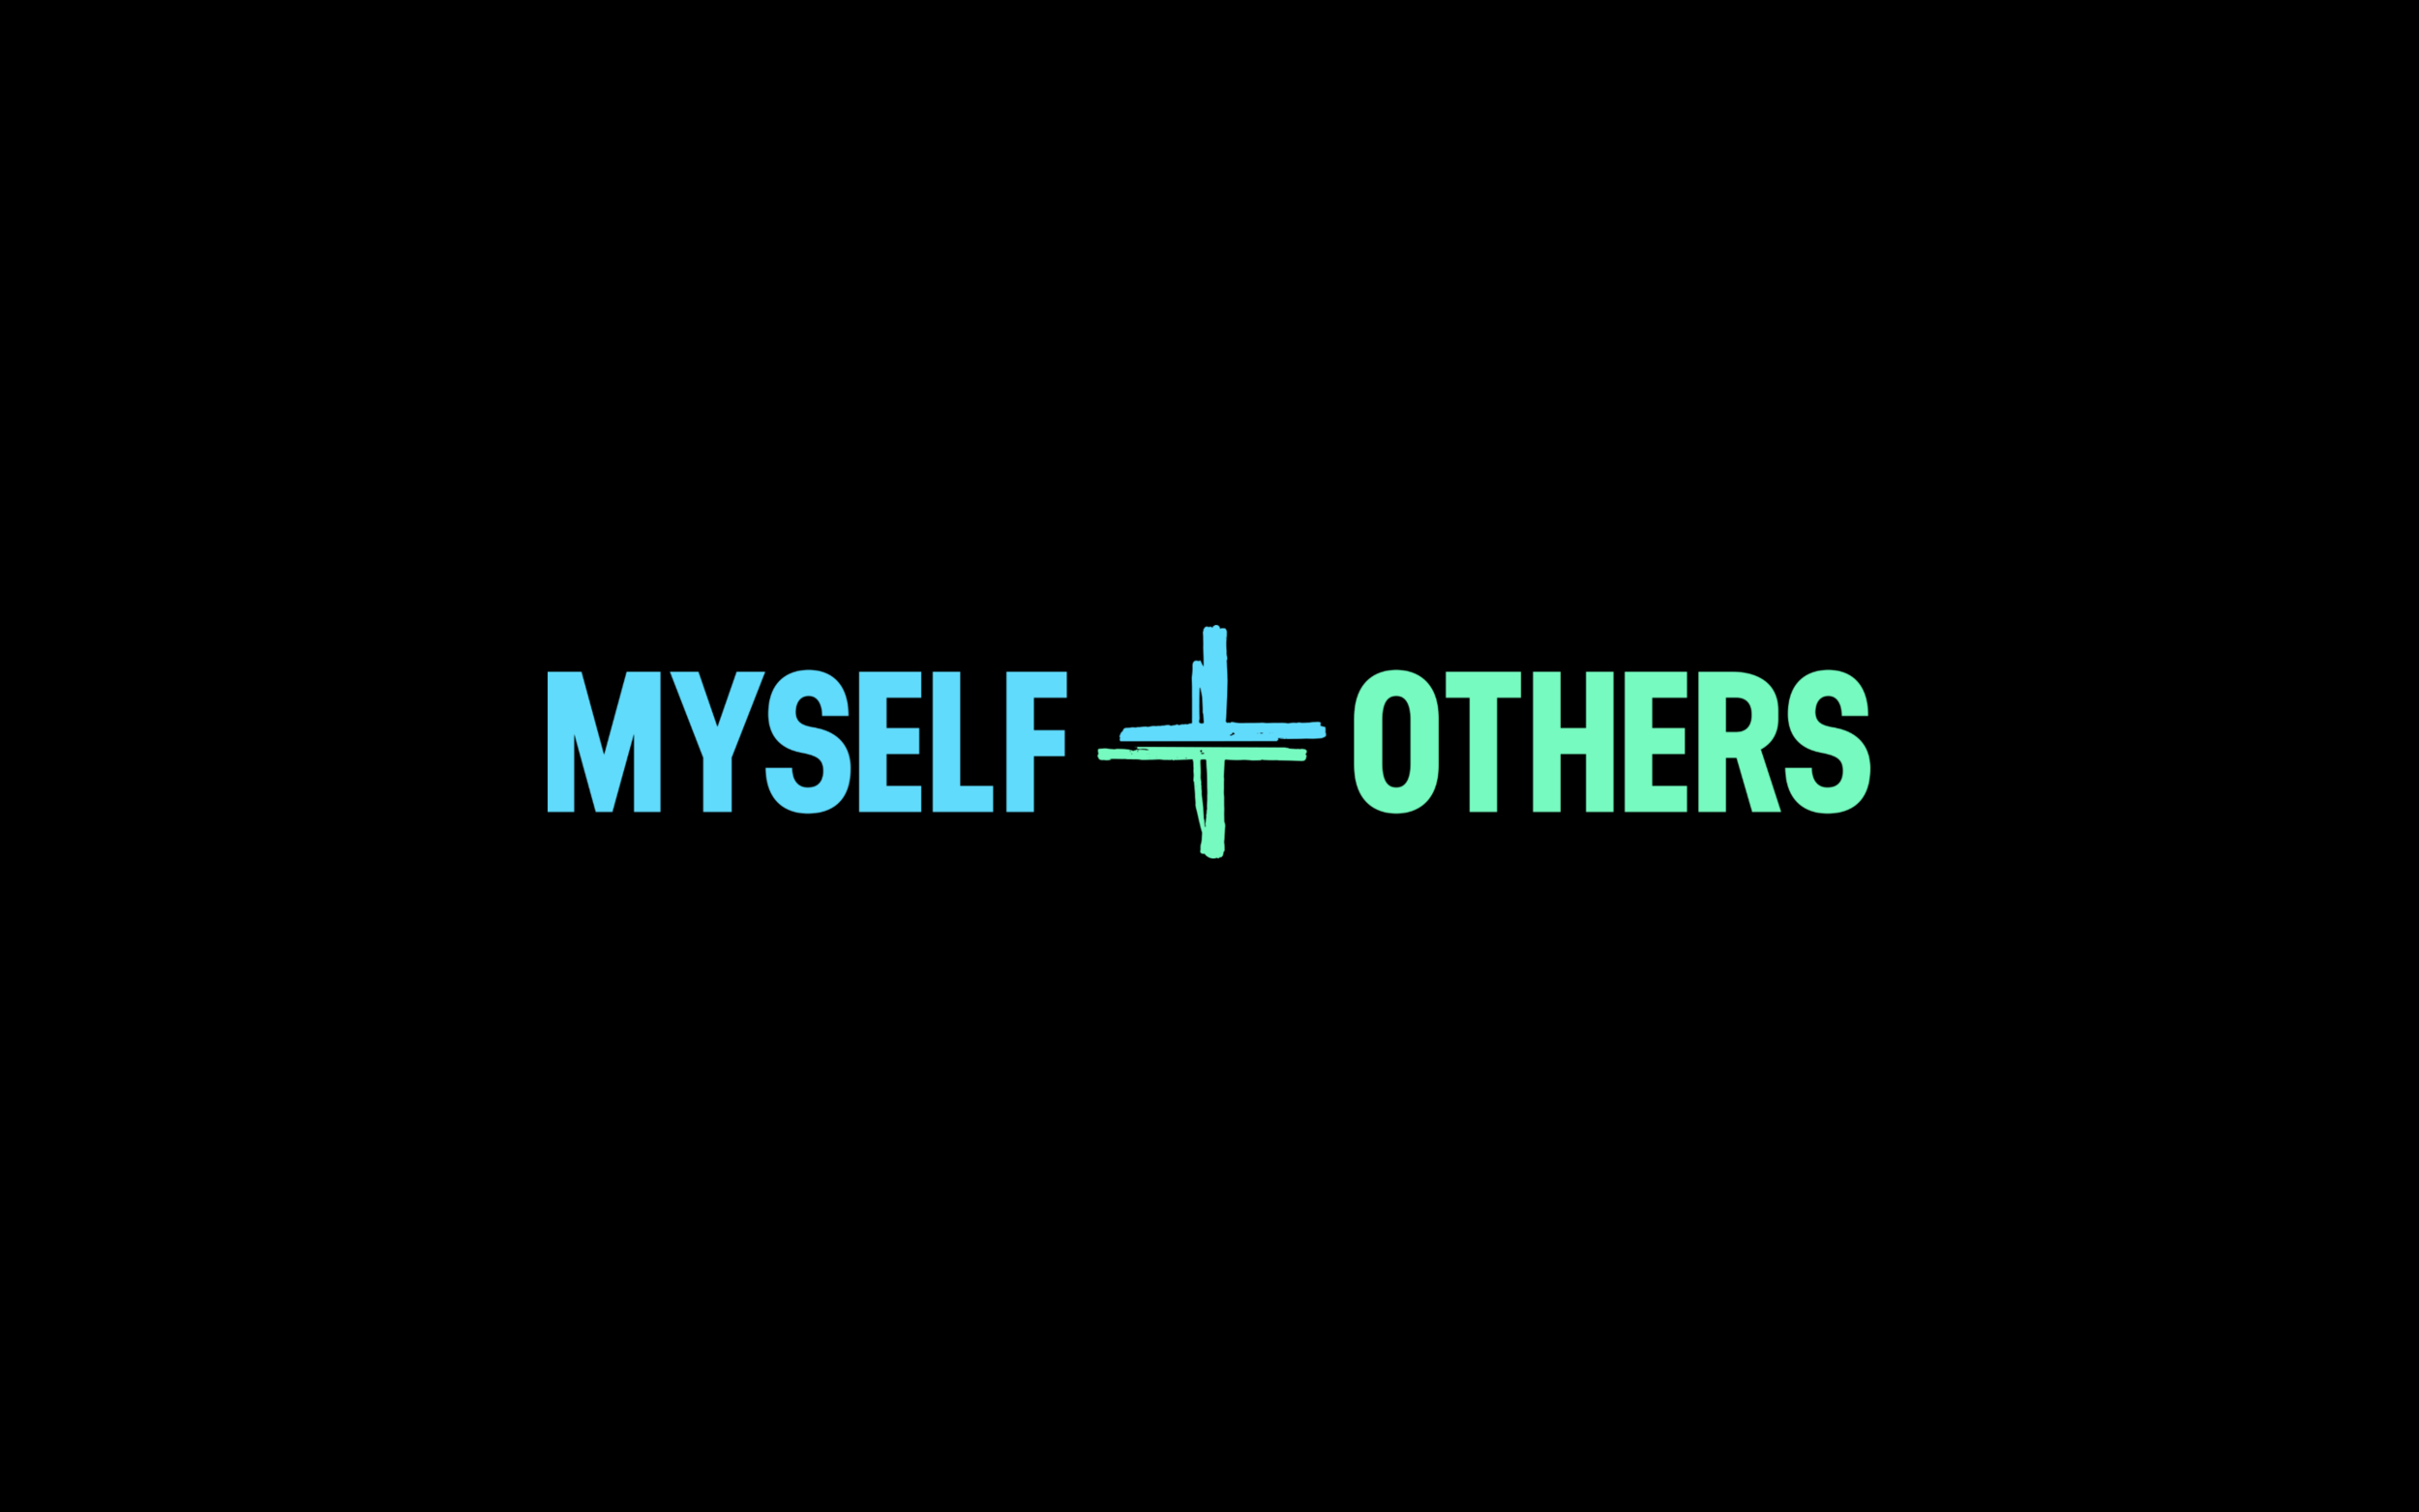 myselfandothers.com - Minimalistic Squarespace Website BuildMyself + Others needed a powerful tool to build brand recognition and inform users of their business. We gave their business an online facelift with this responsive & custom Squarespace website.